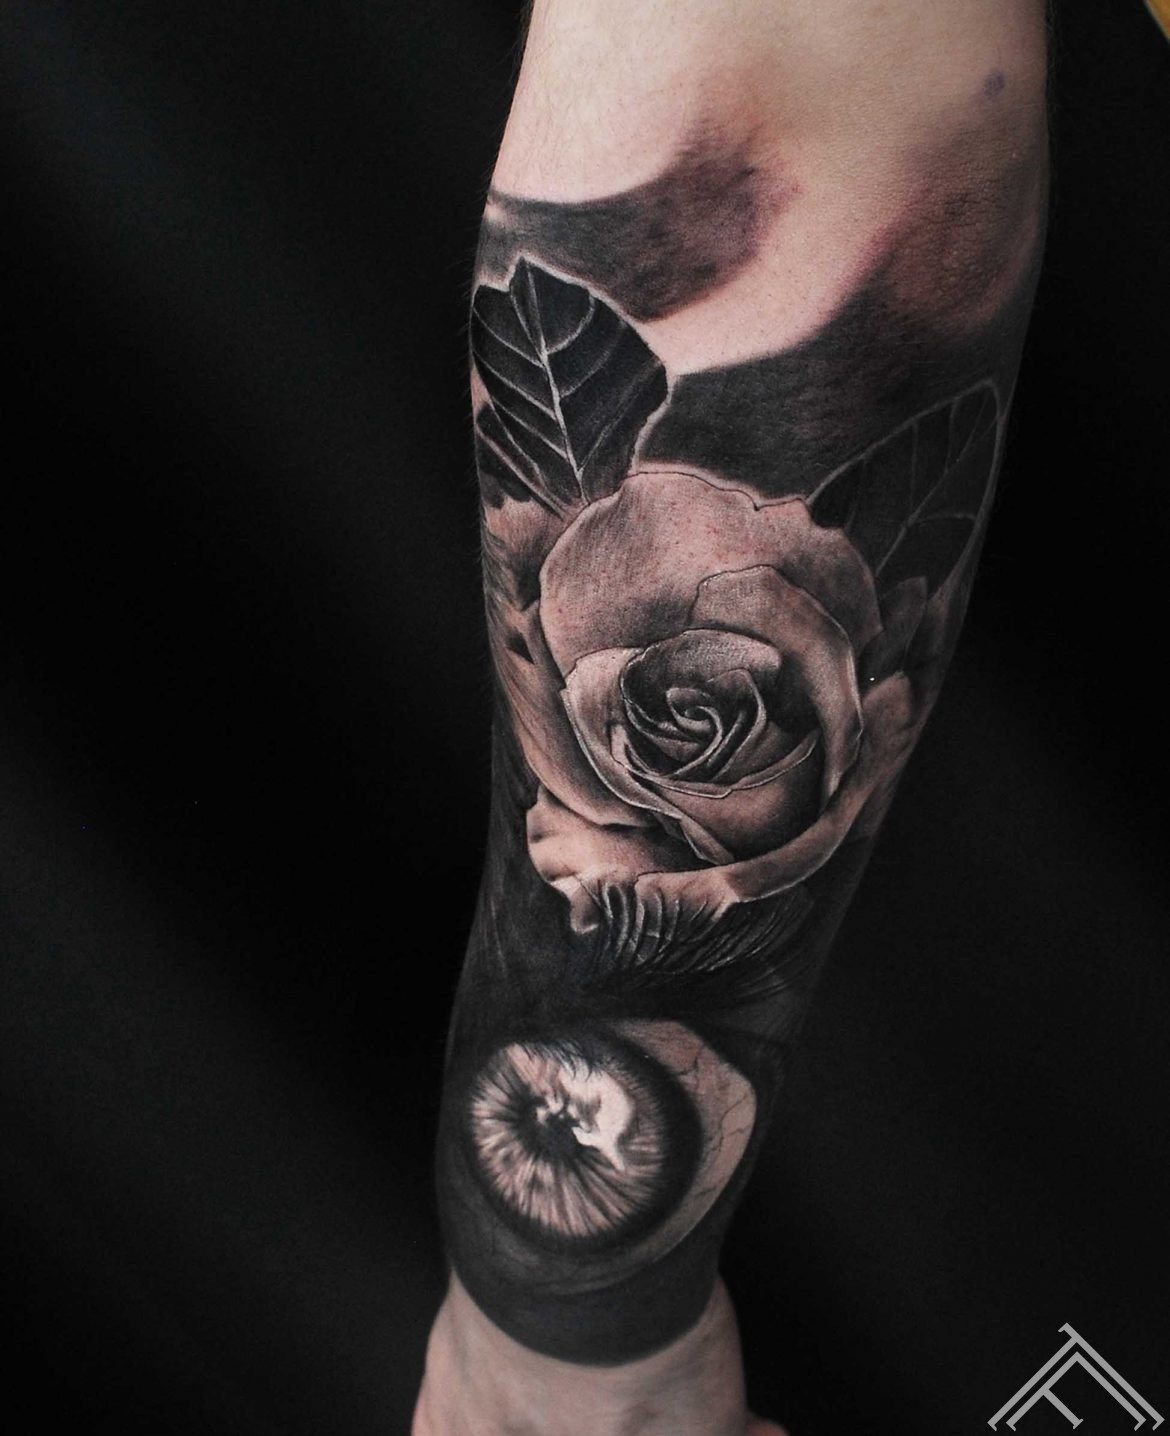 anderson-tattoo-tattoofrequency-eye-rose-roze-tetovejums-art-riga-mlapa